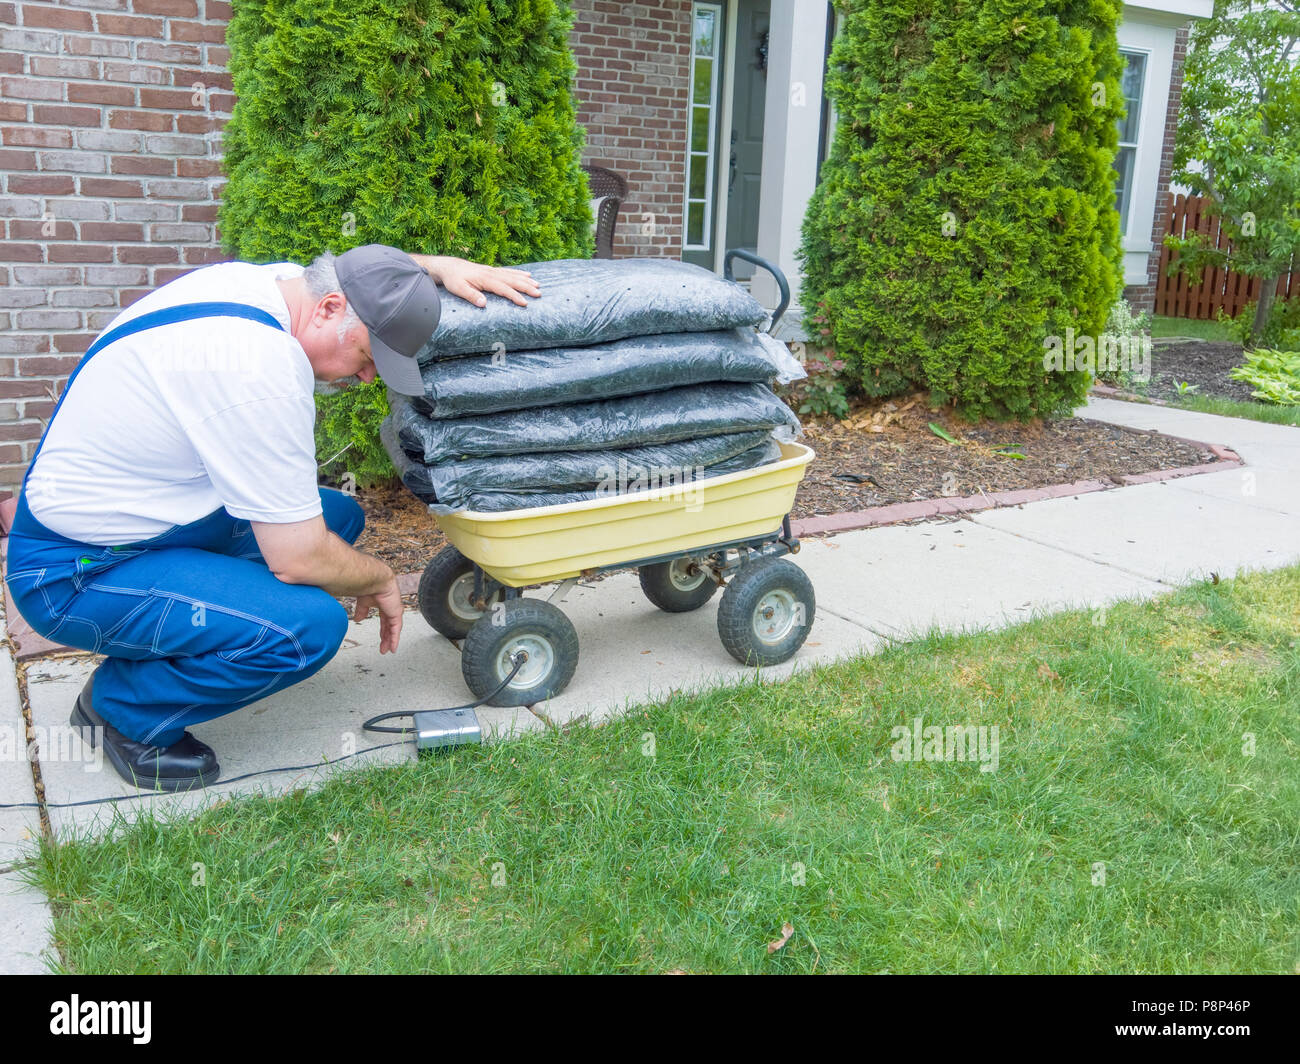 Cart Loaded With Bags Stock Photos Amp Cart Loaded With Bags